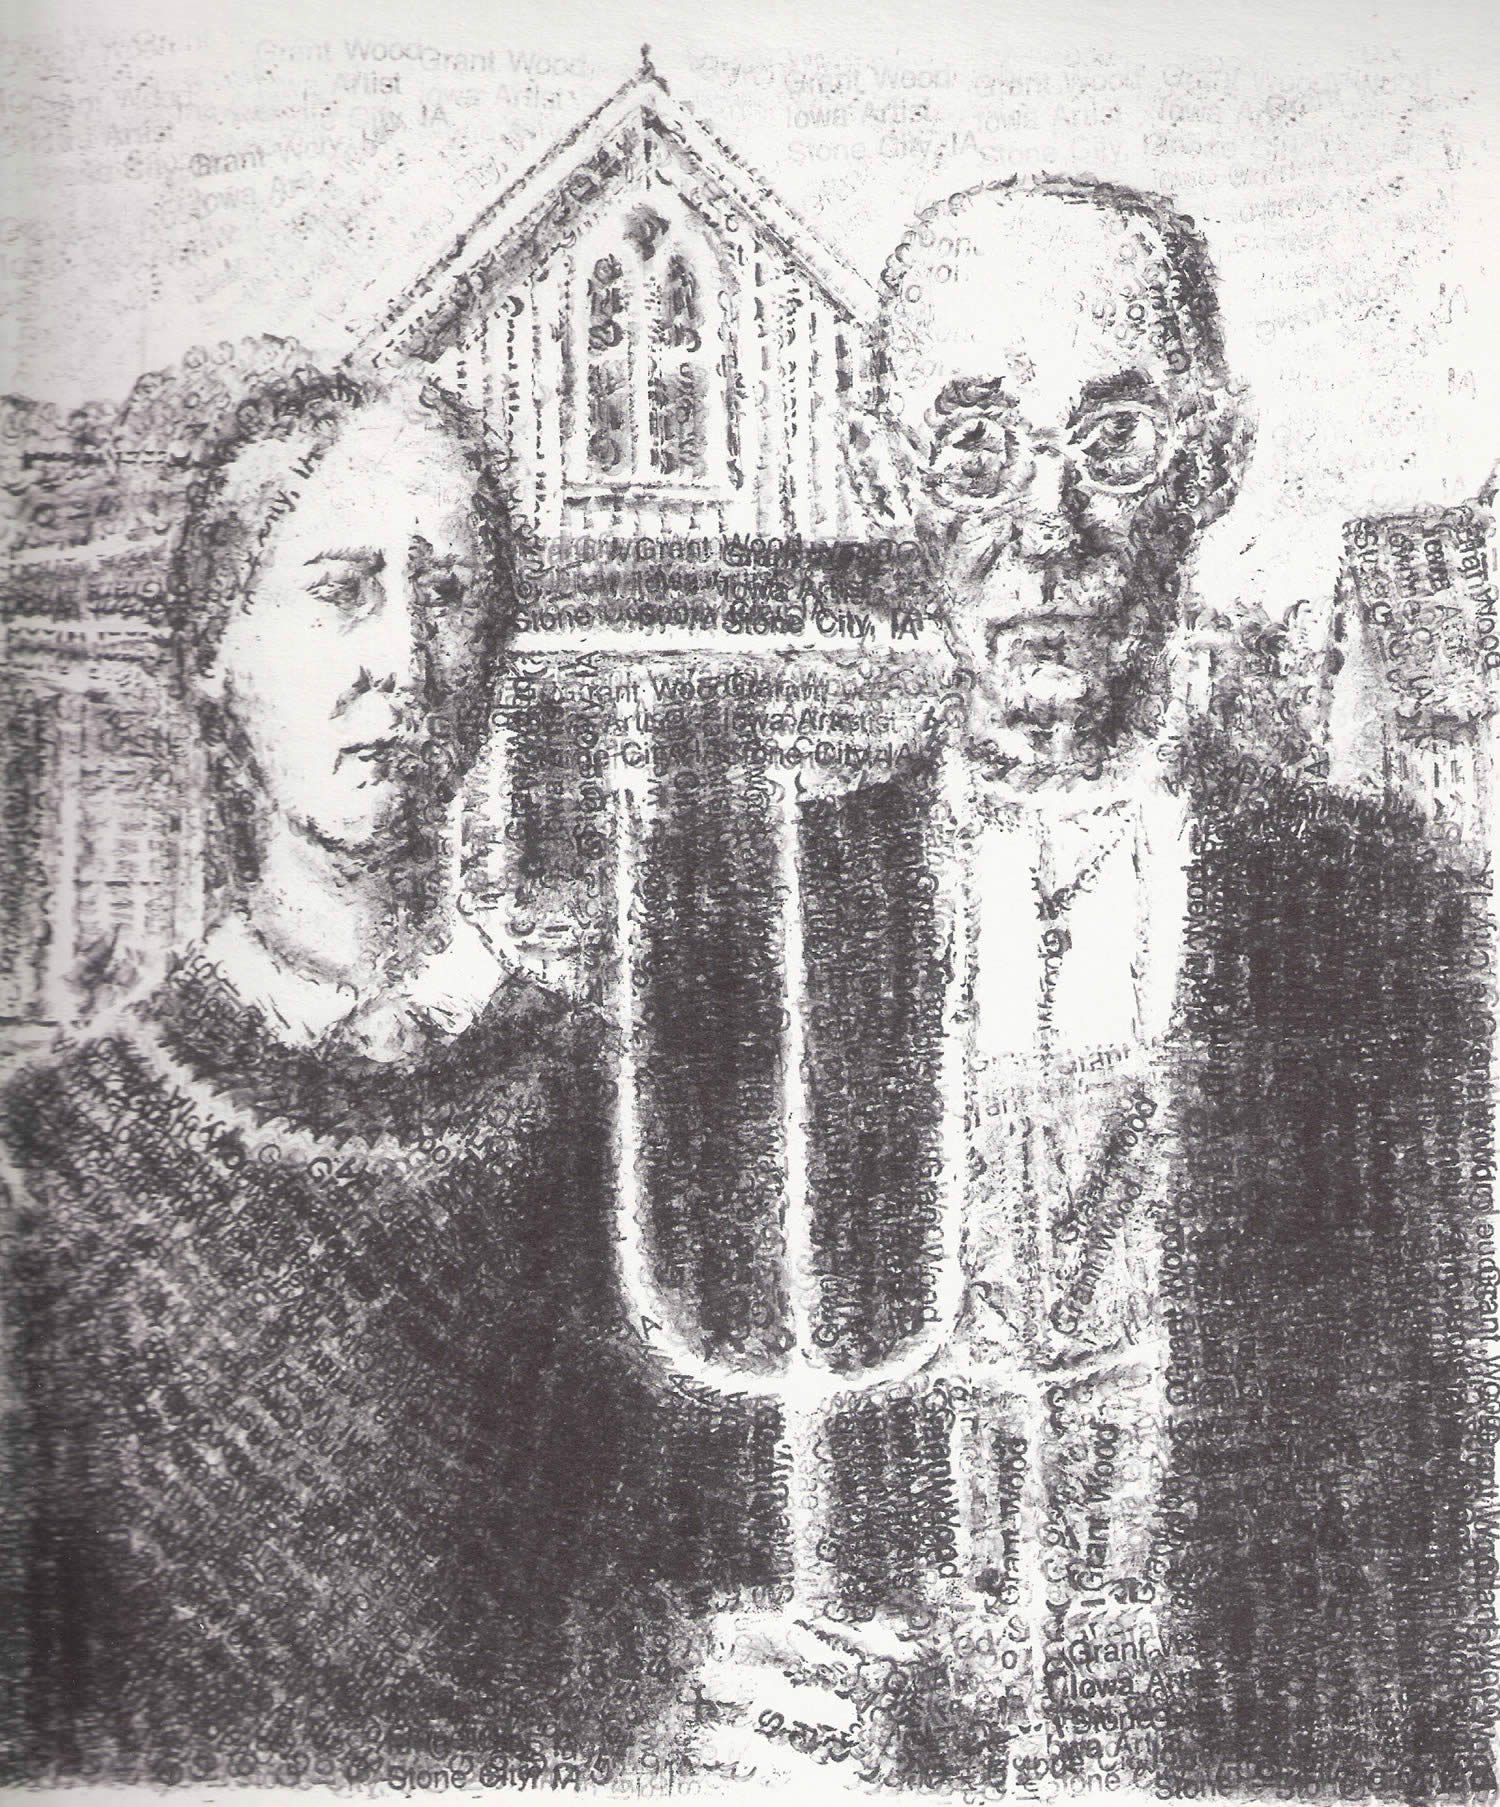 rubber stamp art by dave morice. American gothic remake